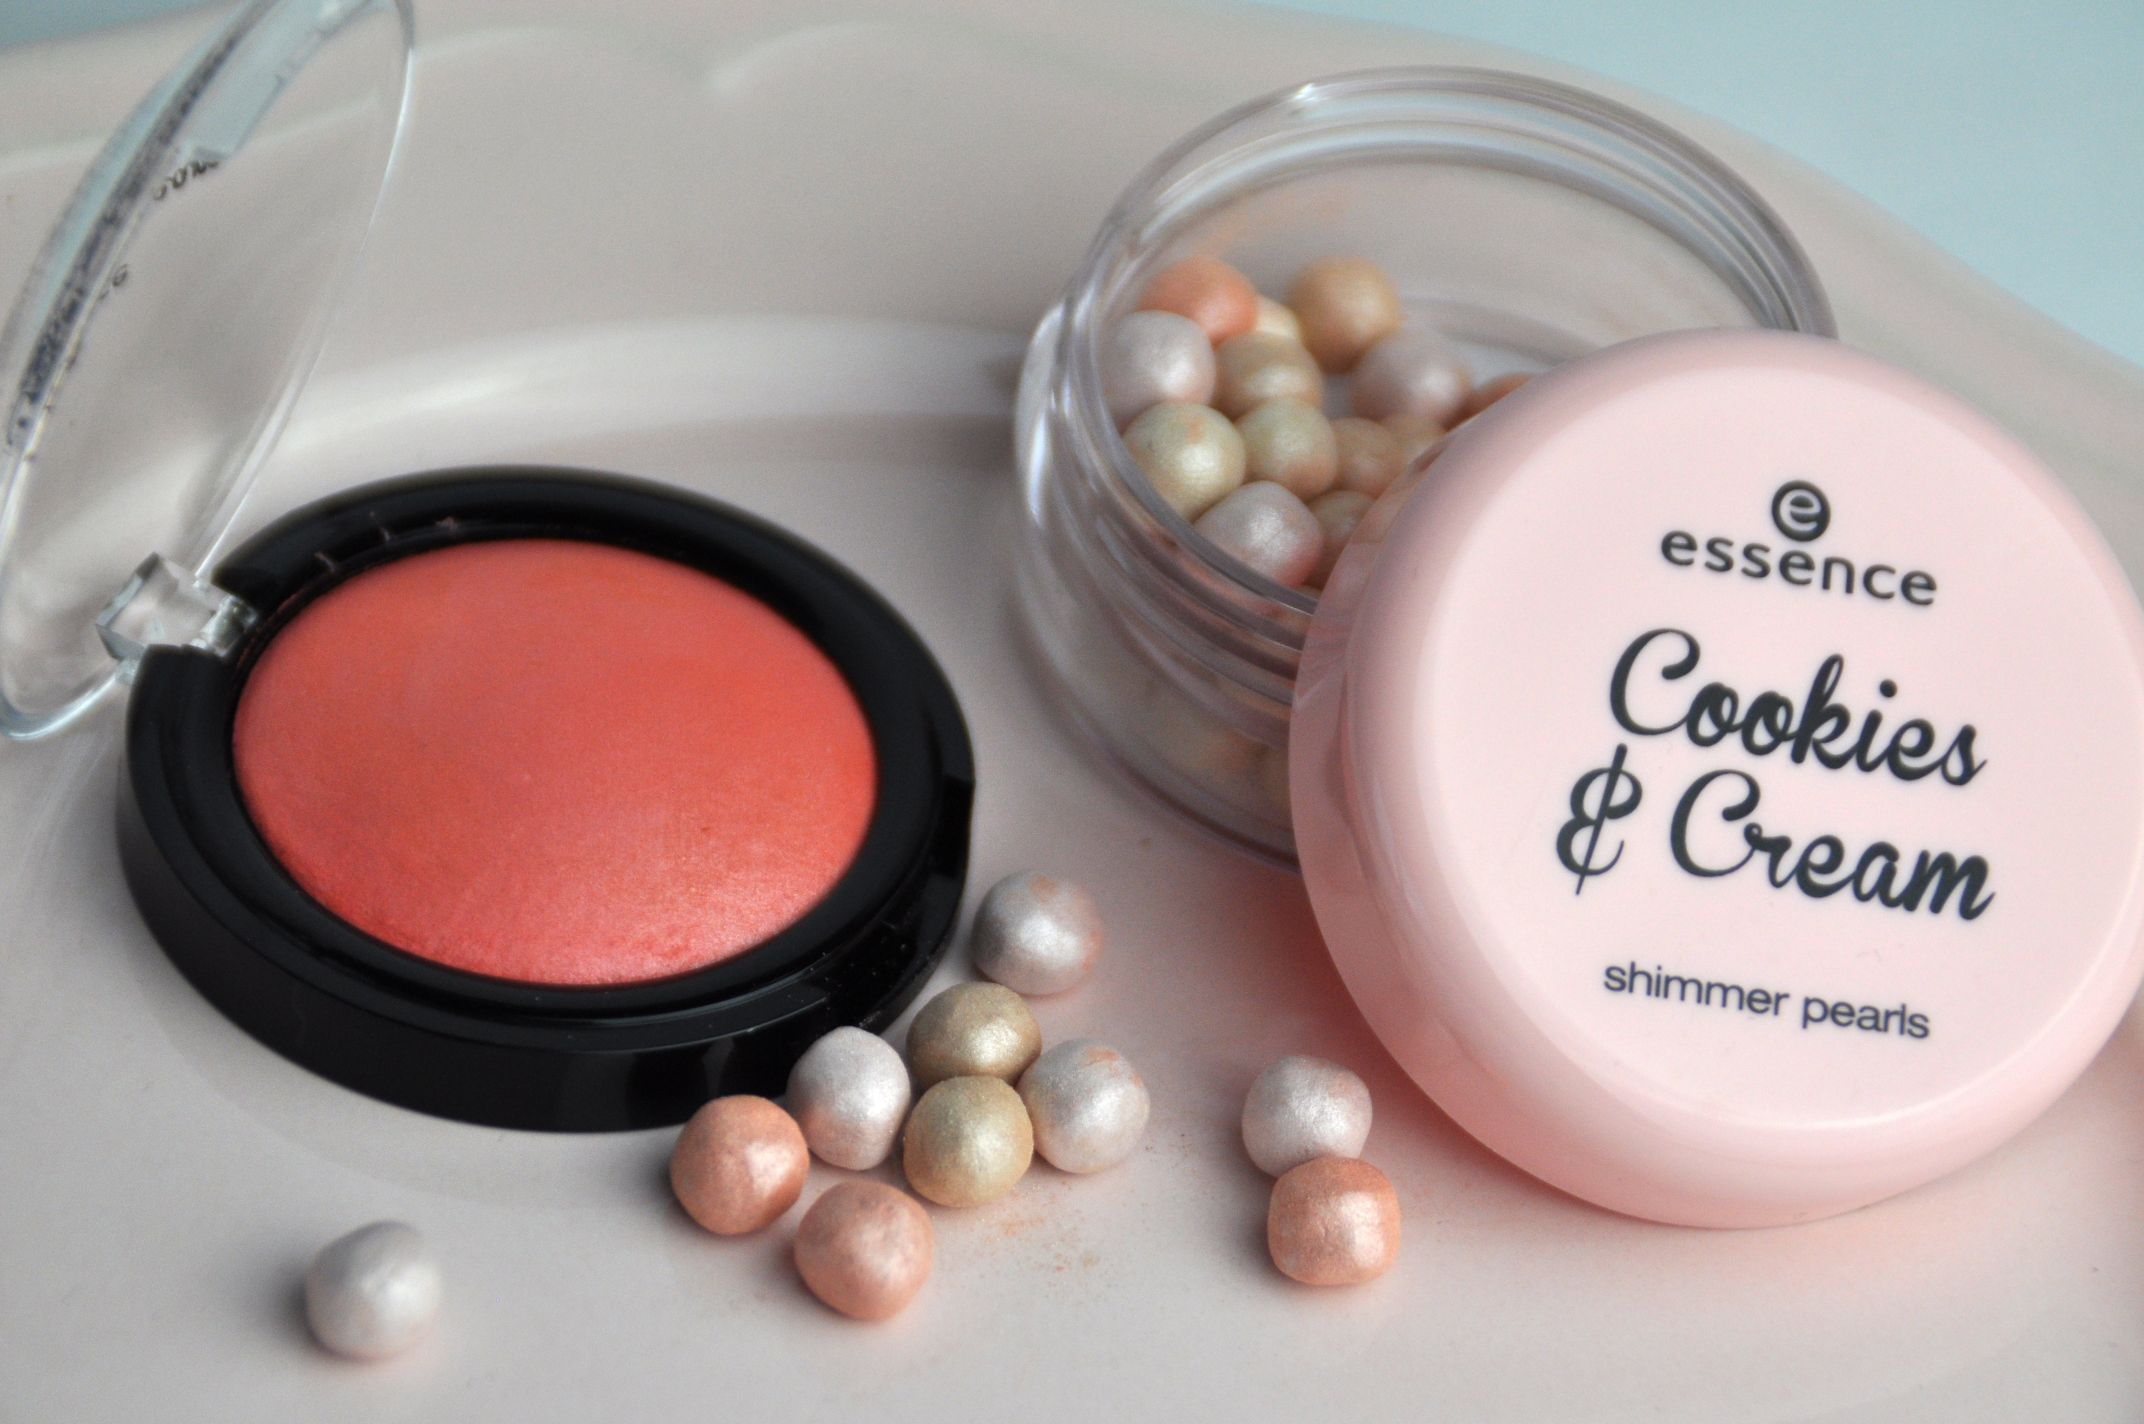 Essence Cookies & Cream LE – Review & Swatches